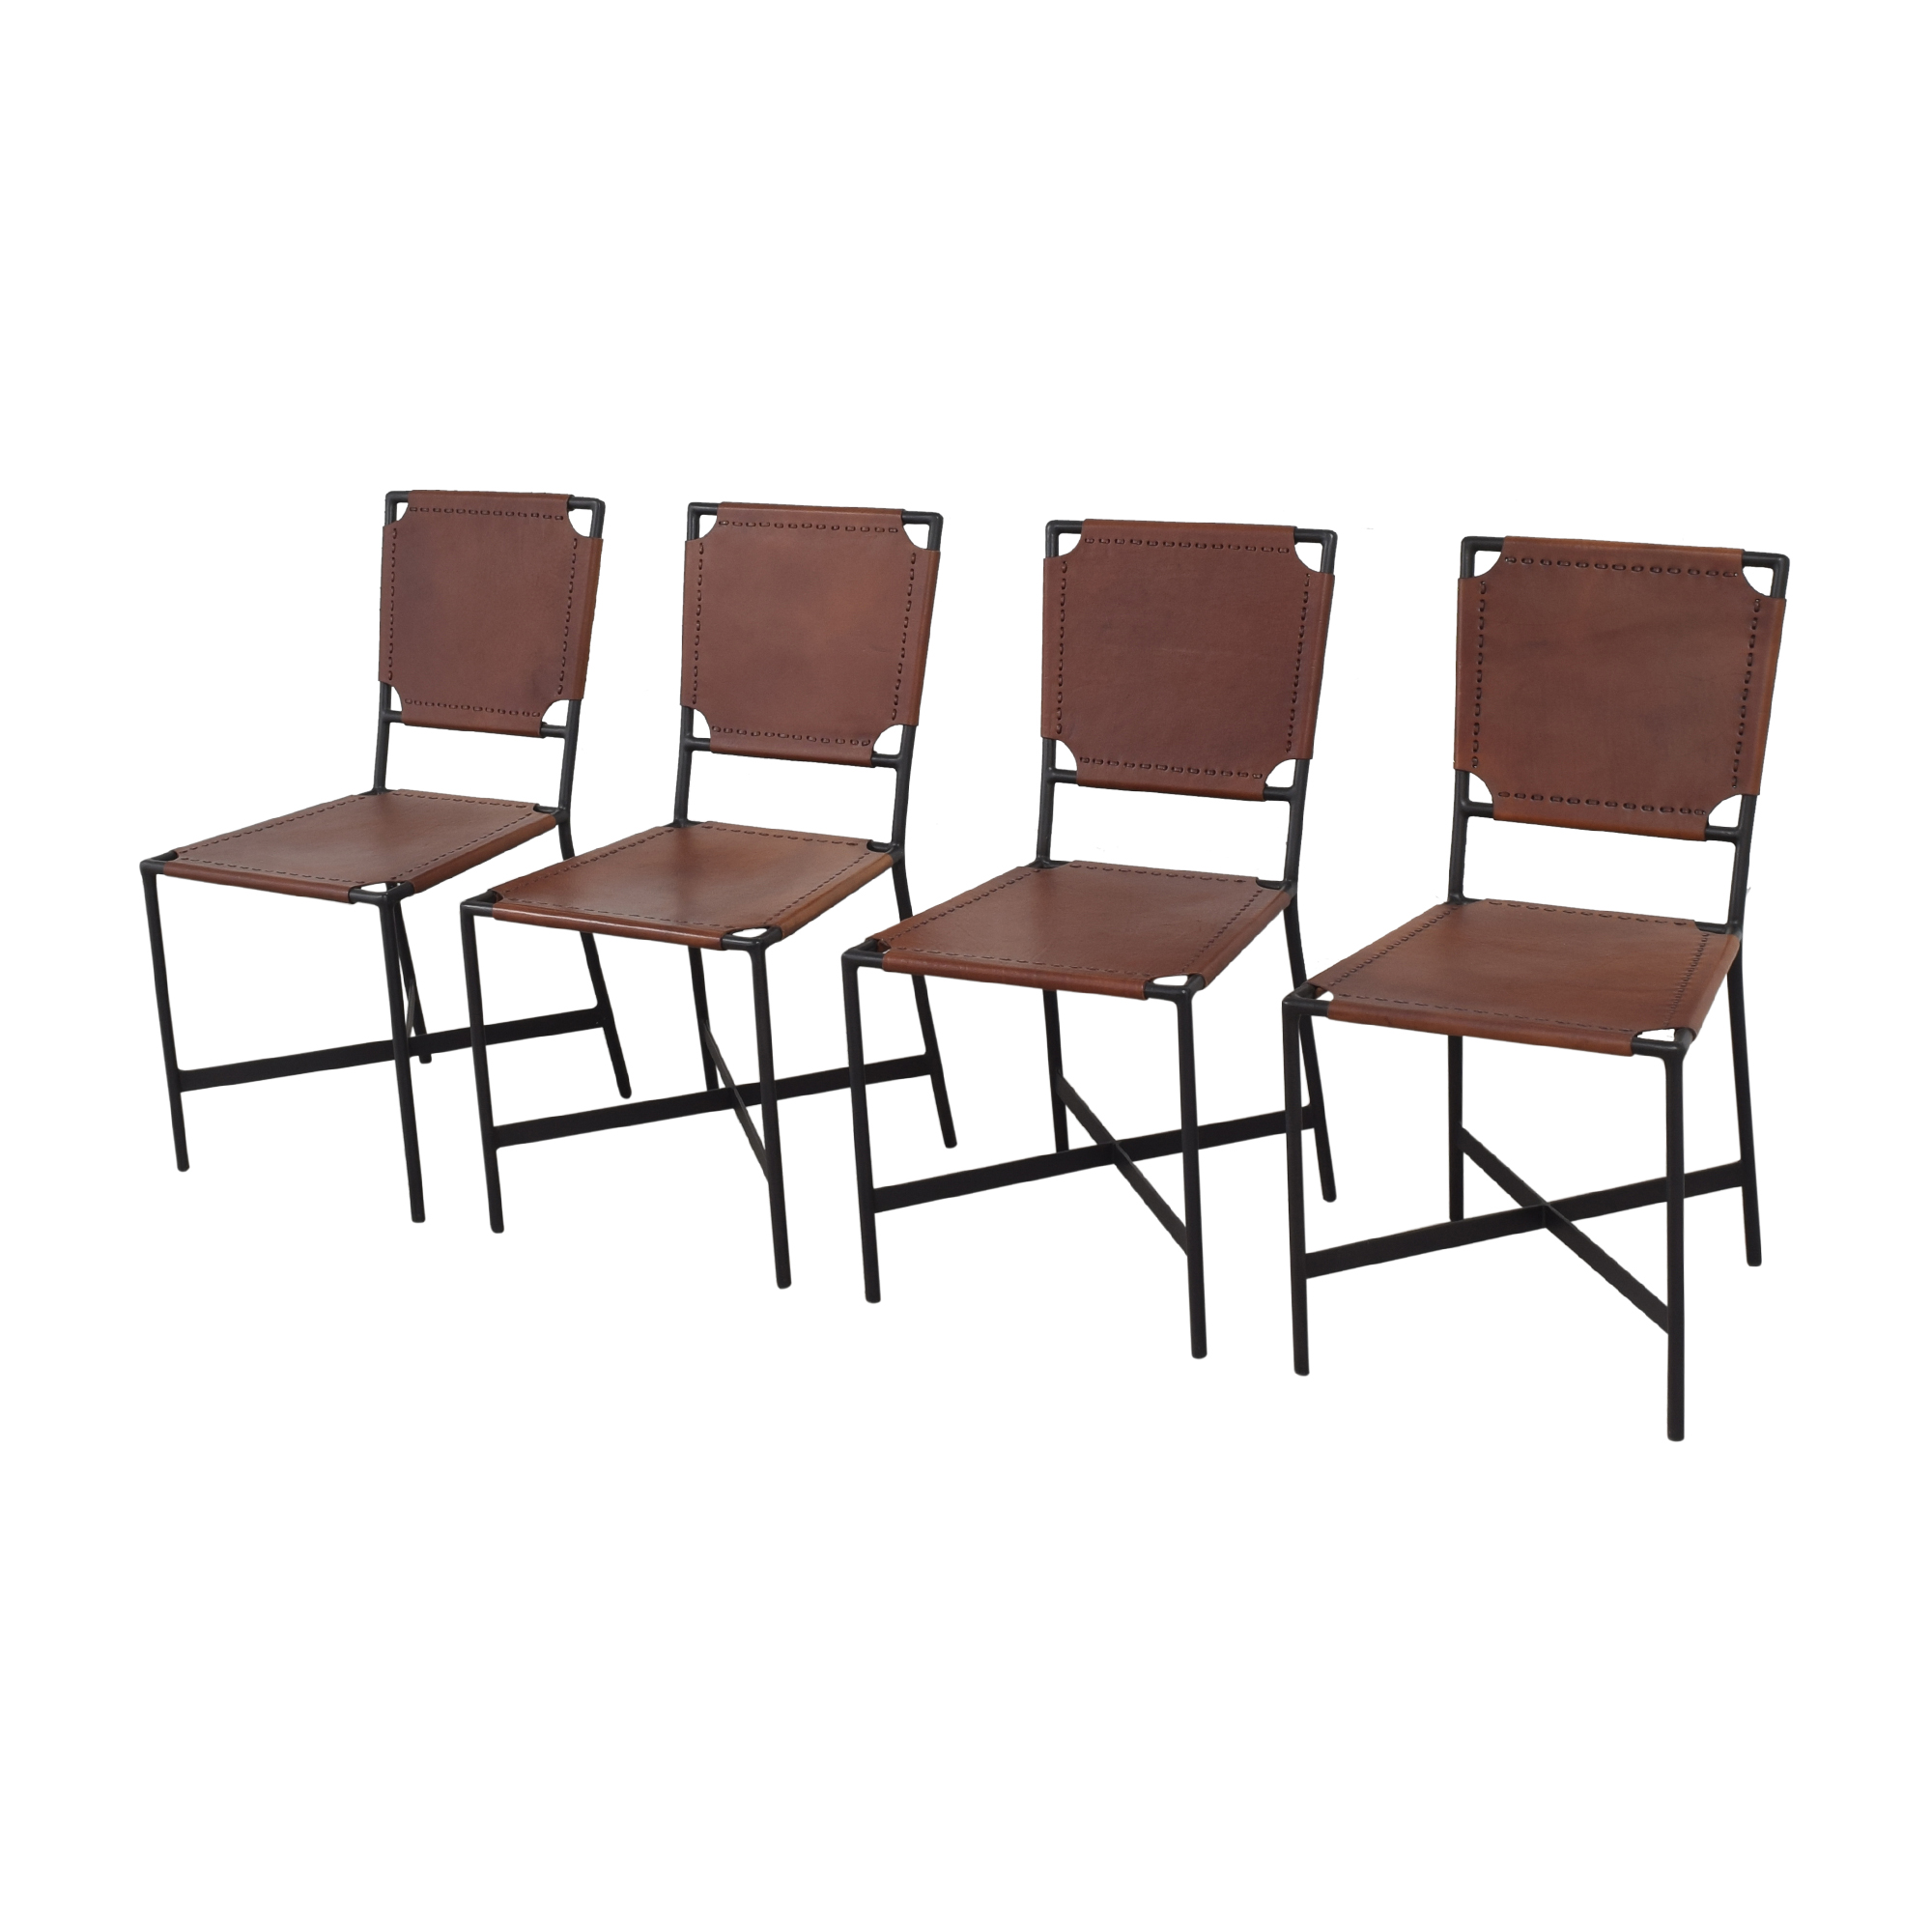 shop Crate & Barrel Laredo Dining Chairs Crate & Barrel Dining Chairs